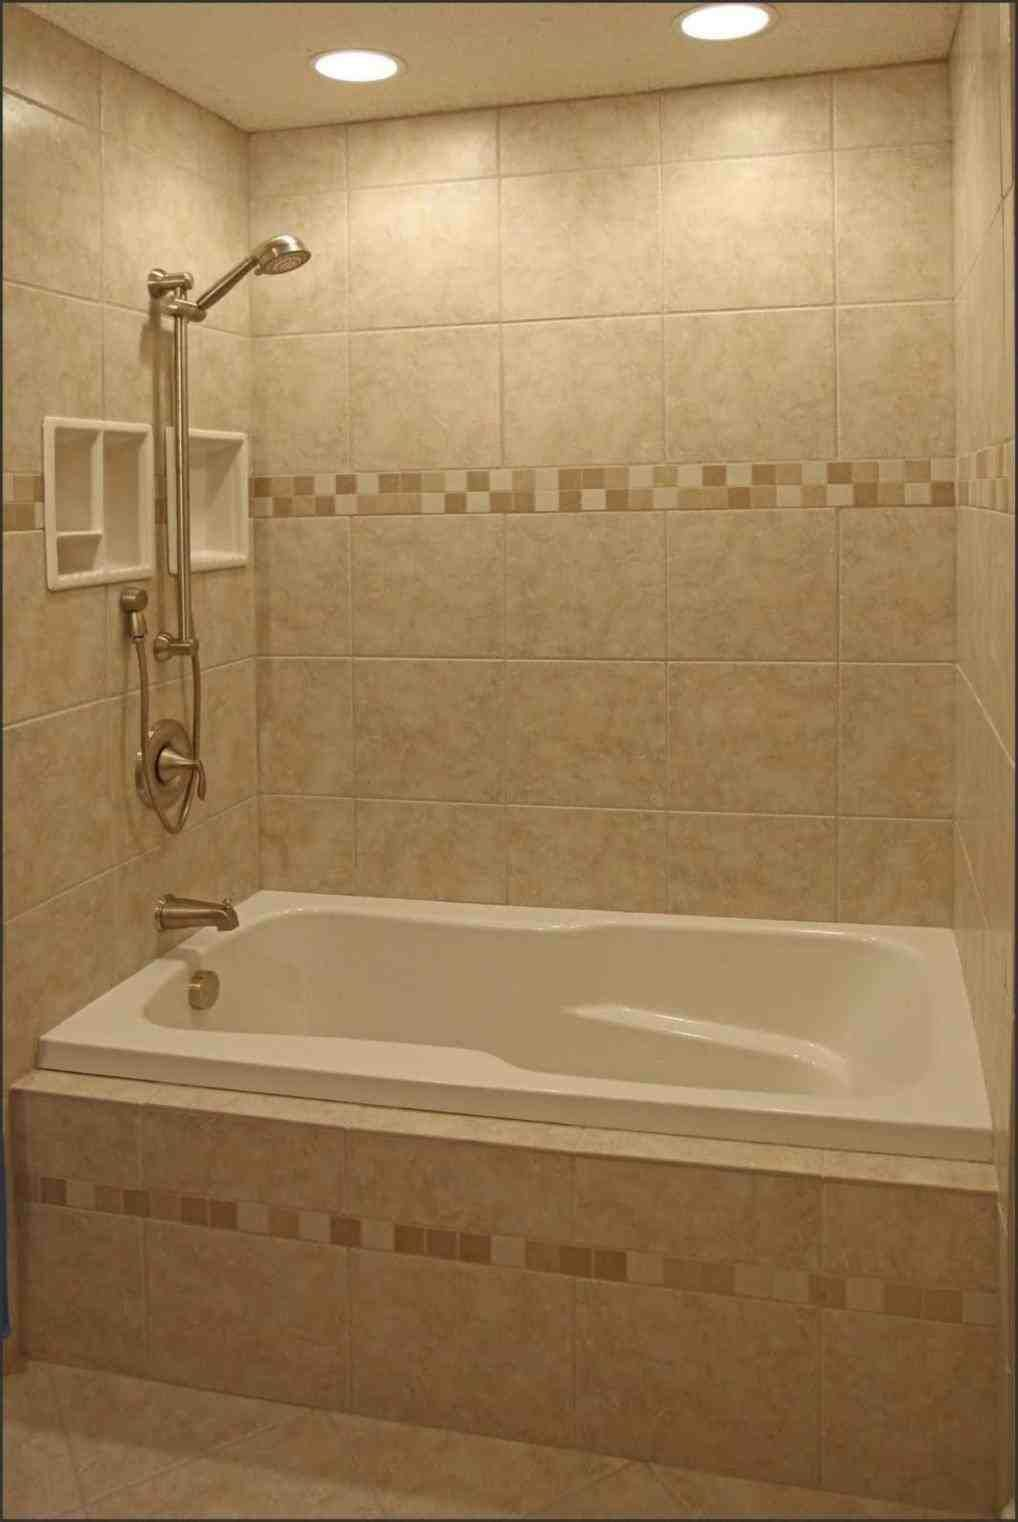 Shower Jacuzzi Tub Combo Bathtub Tile Bathroom Tile Designs